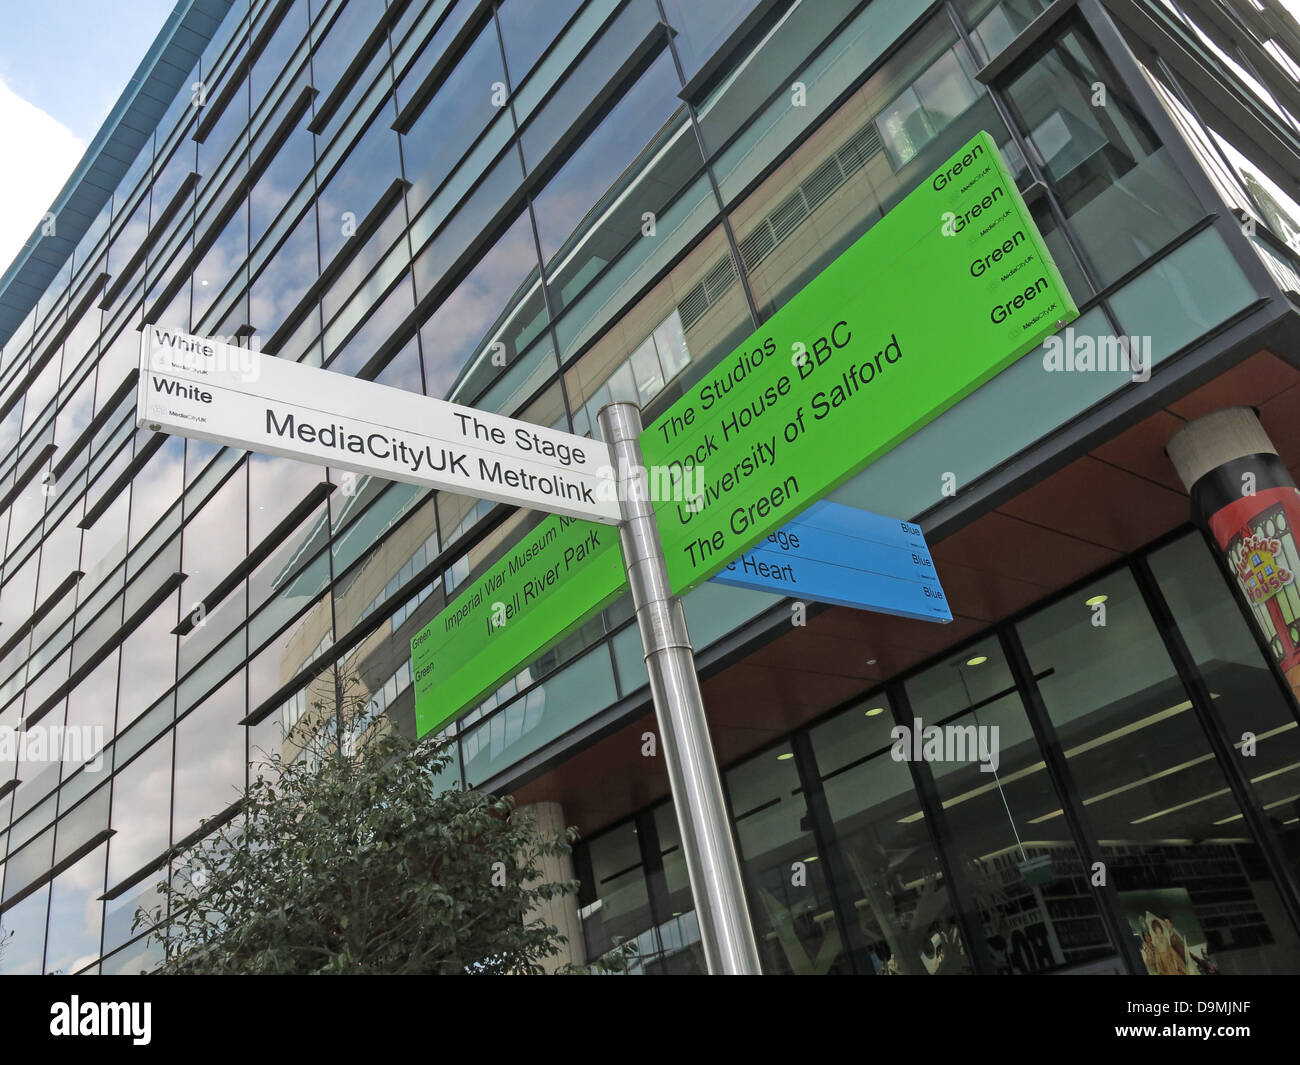 Sign posts at BBC Salford Media City UK Manchester UK to The Stage, MediaCityUK Metrolink - Stock Image